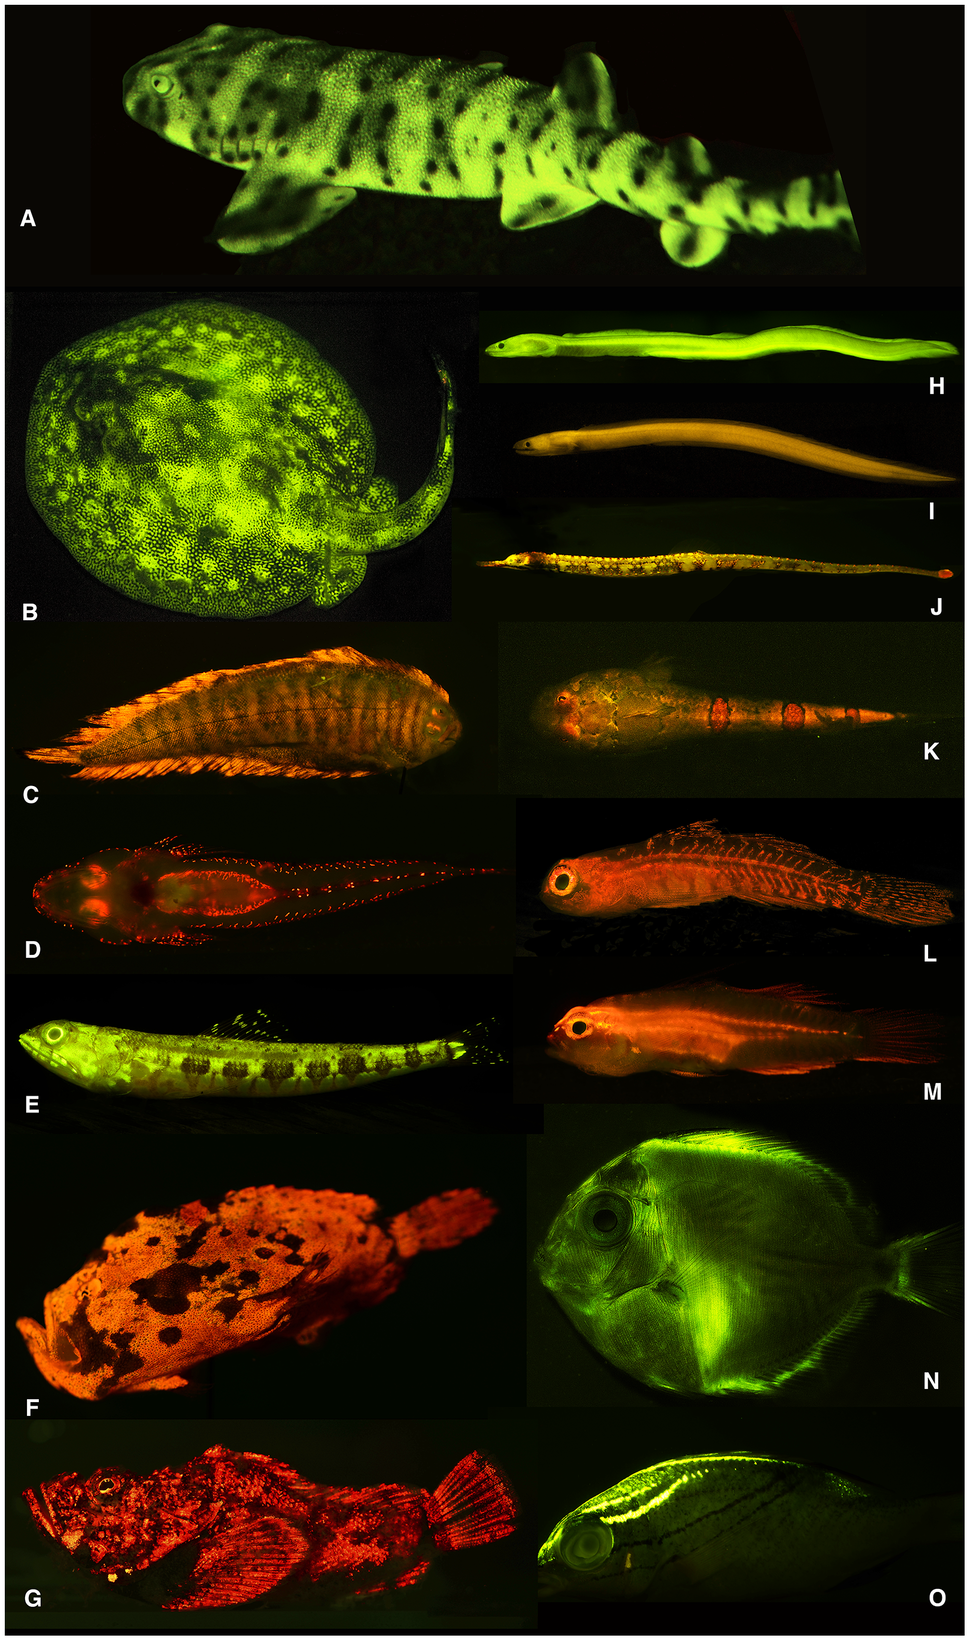 Diversity of fluorescent patterns and colors in marine fishes - journal.pone.0083259.g001